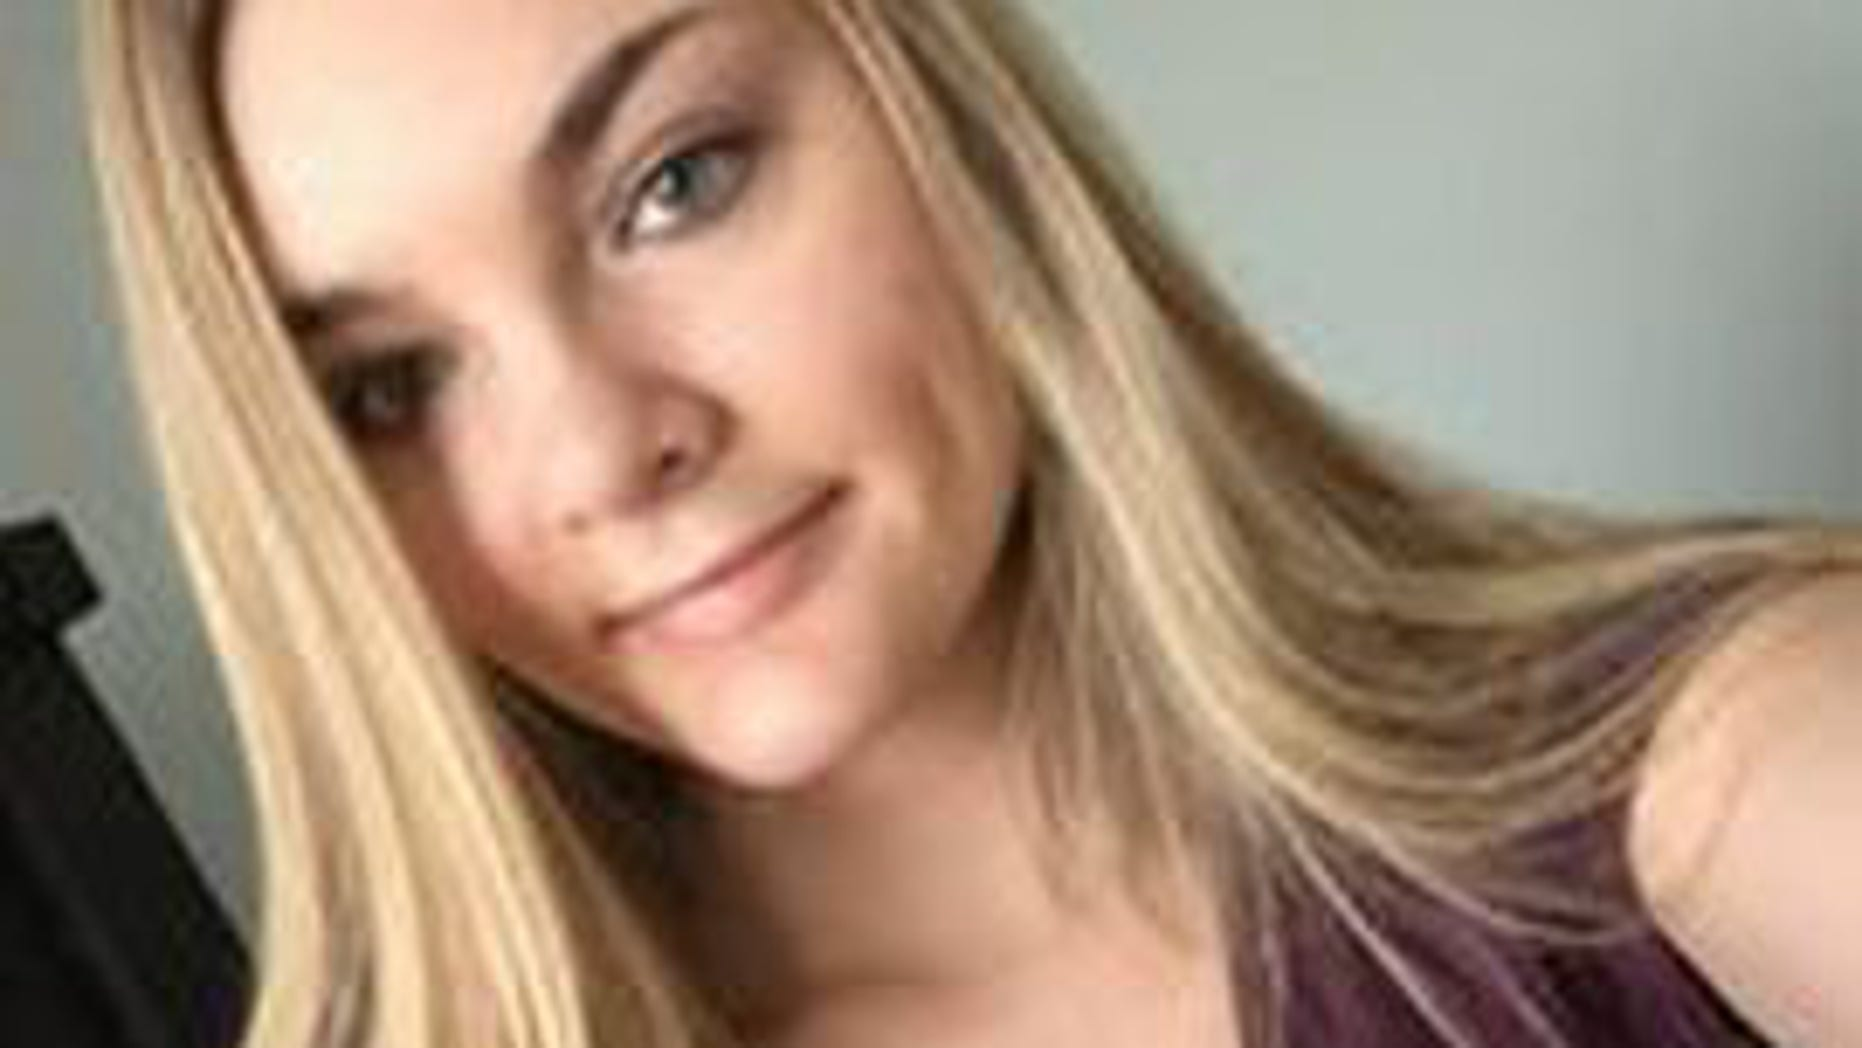 Madison Krumrine, 16, is seen in this undated photo